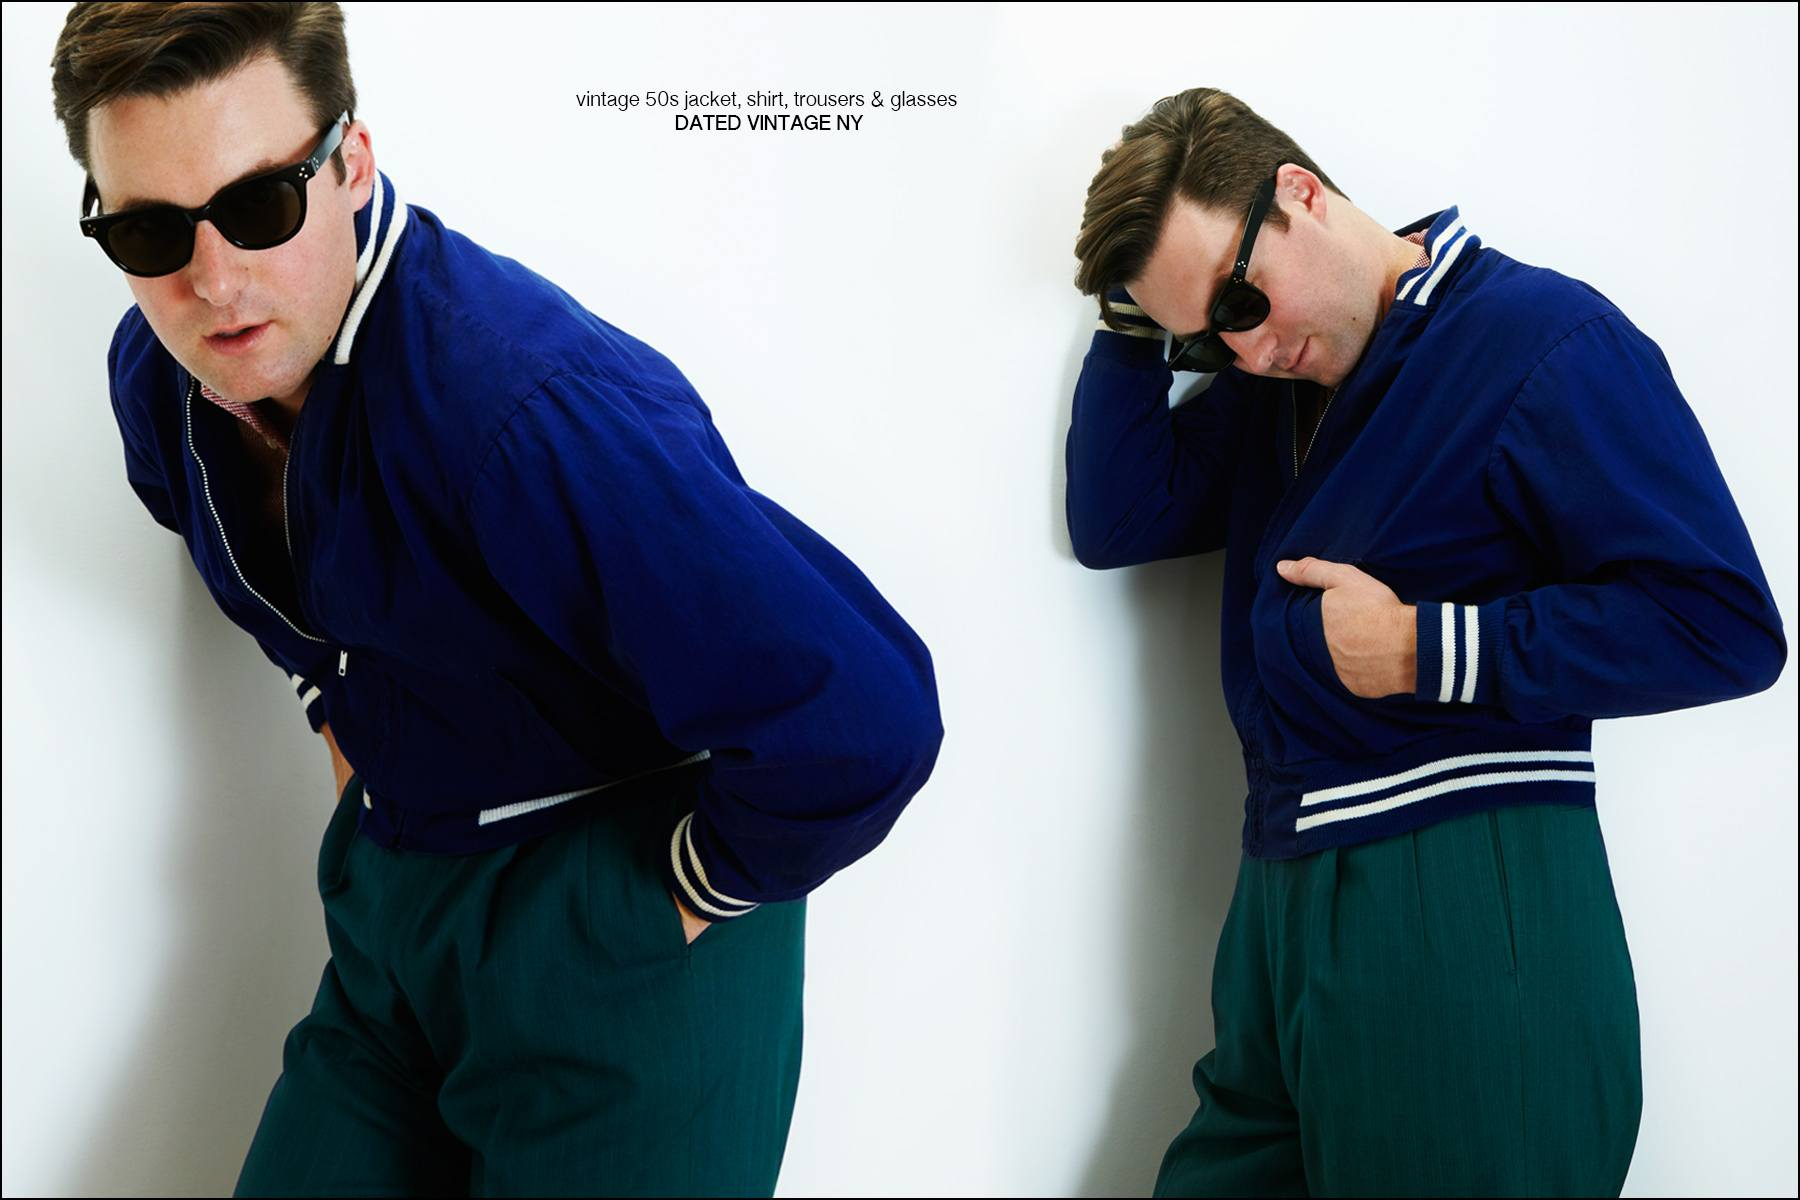 Nick Waterhouse photographed for Ponyboy magazine NY by Alexander Thompson, with styling by Antonio Abrego.